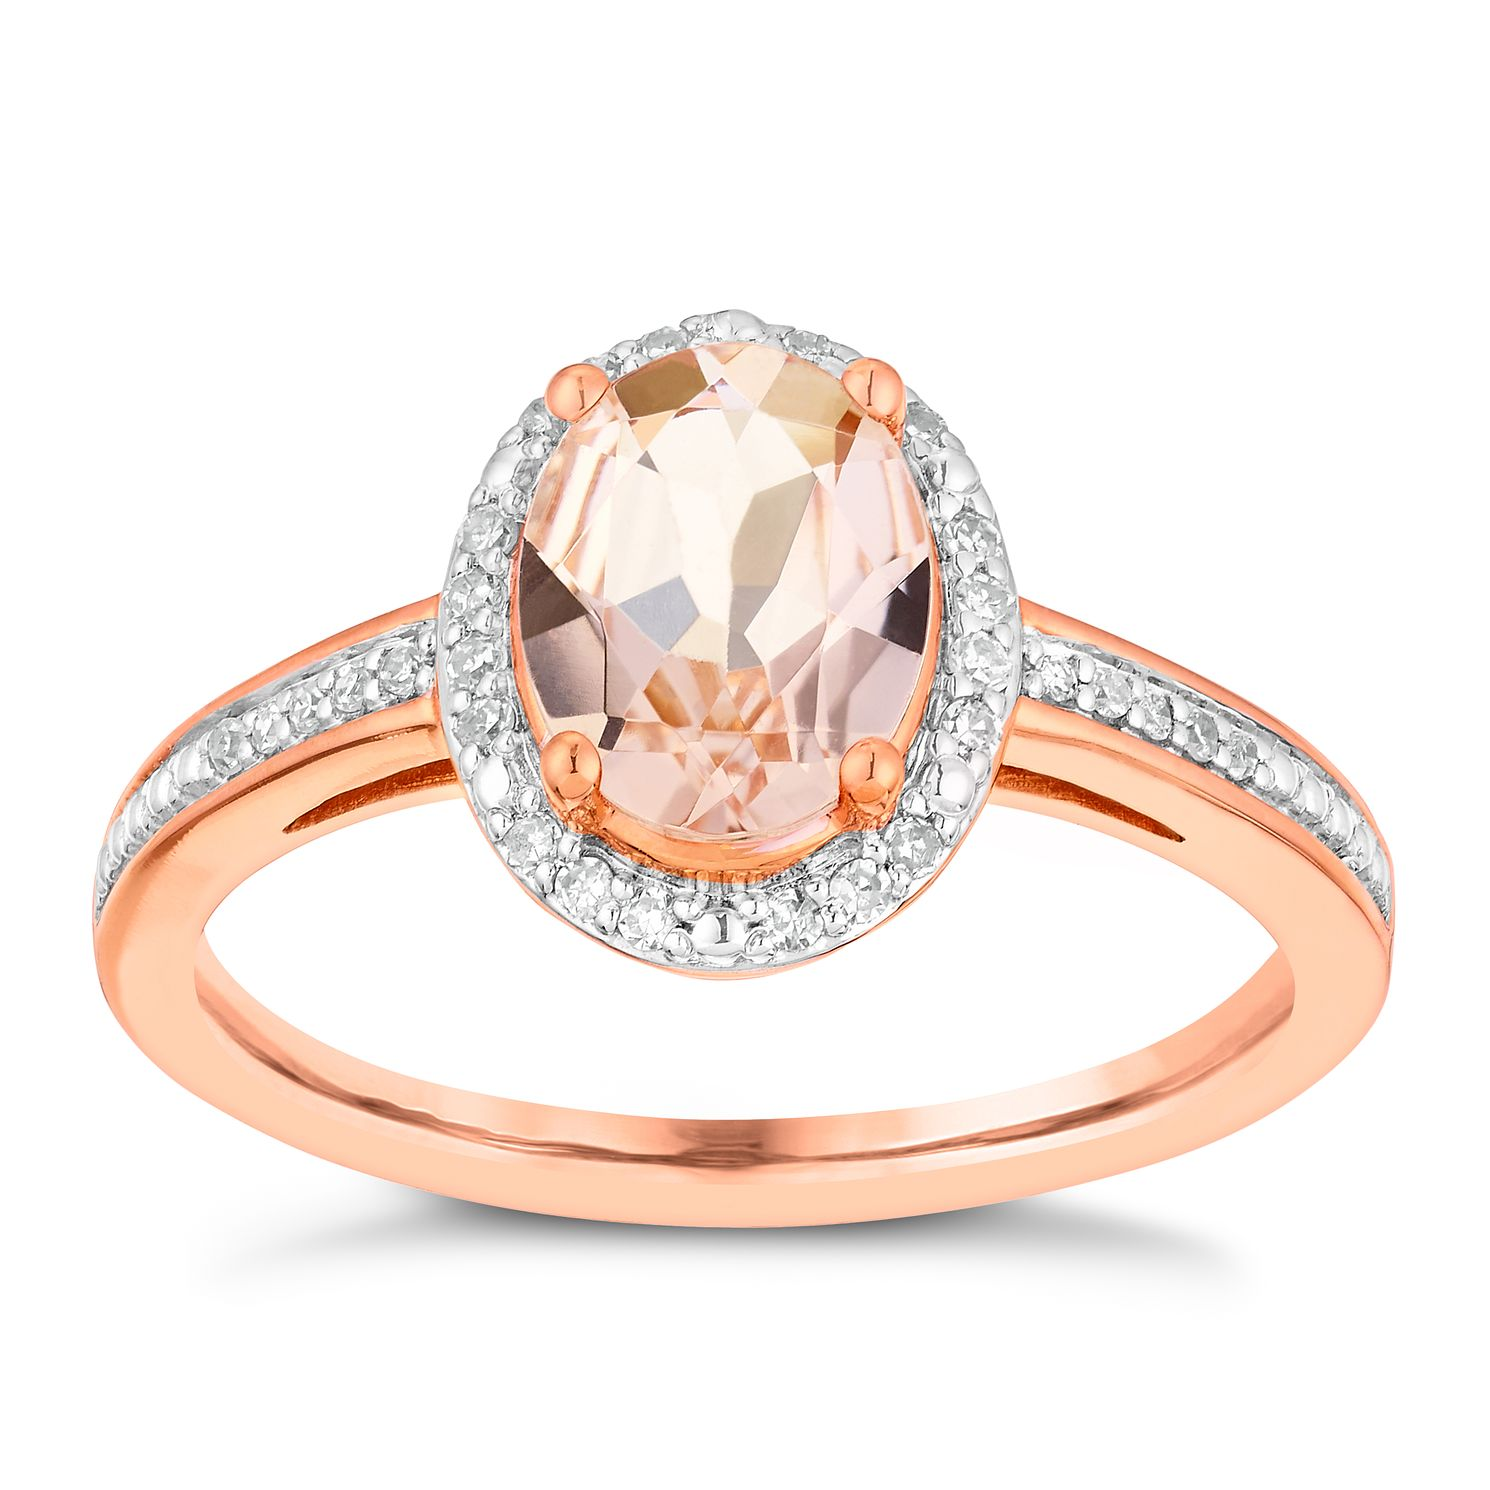 9ct Rose Gold 10Pt Diamond & Morganite Ring - Product number 3080617